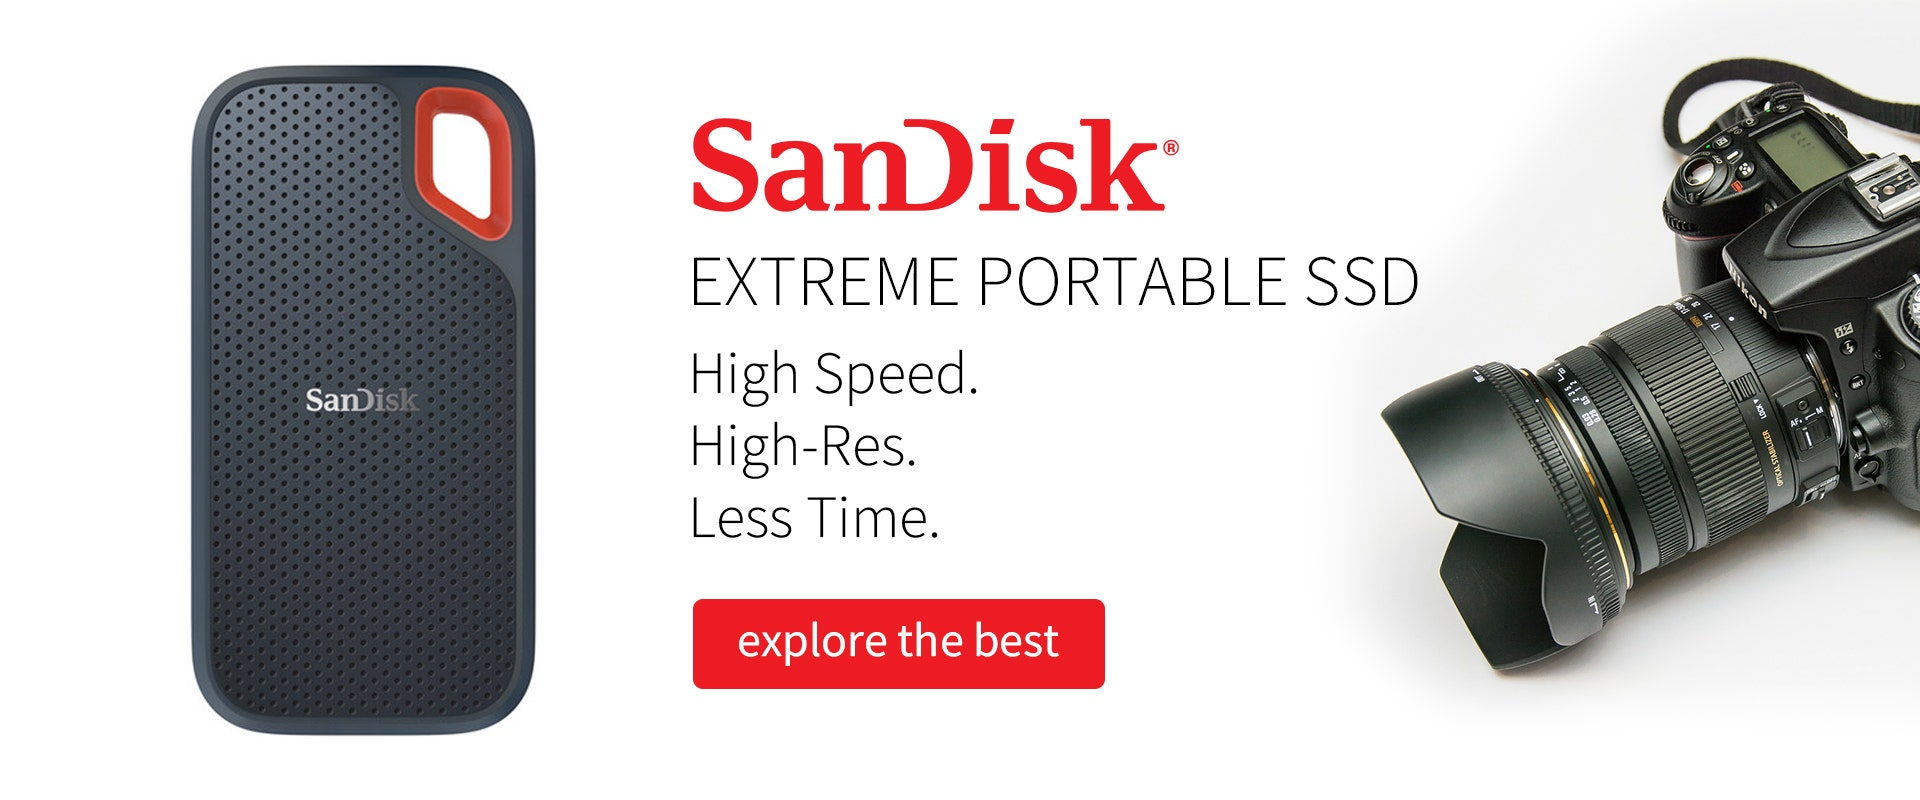 SanDisk providing one of the best storage solutions for filmmakers.